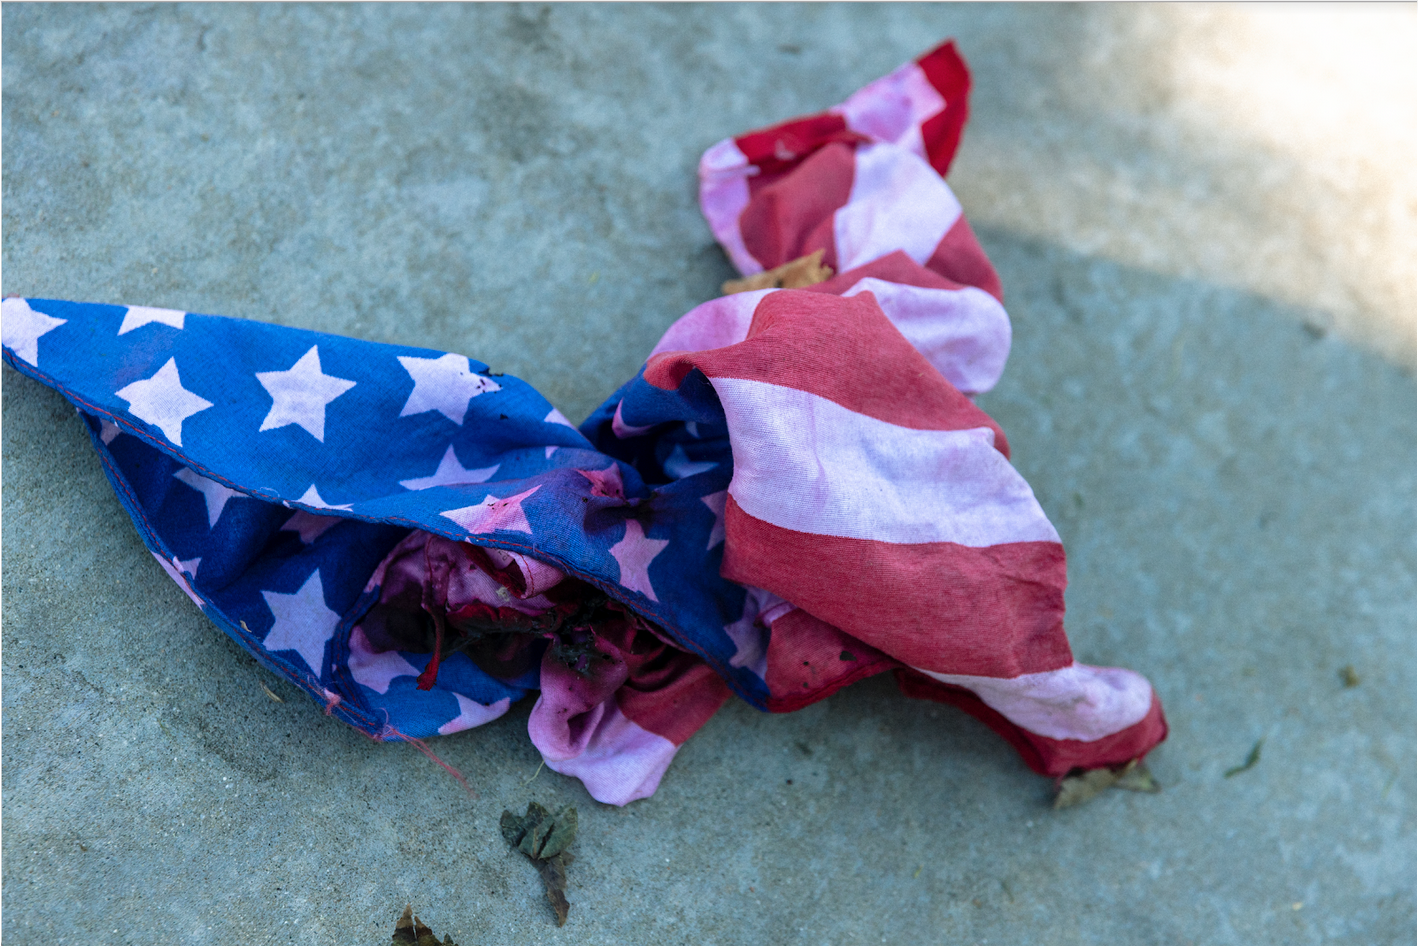 Tattered; smoke-stained American flag.